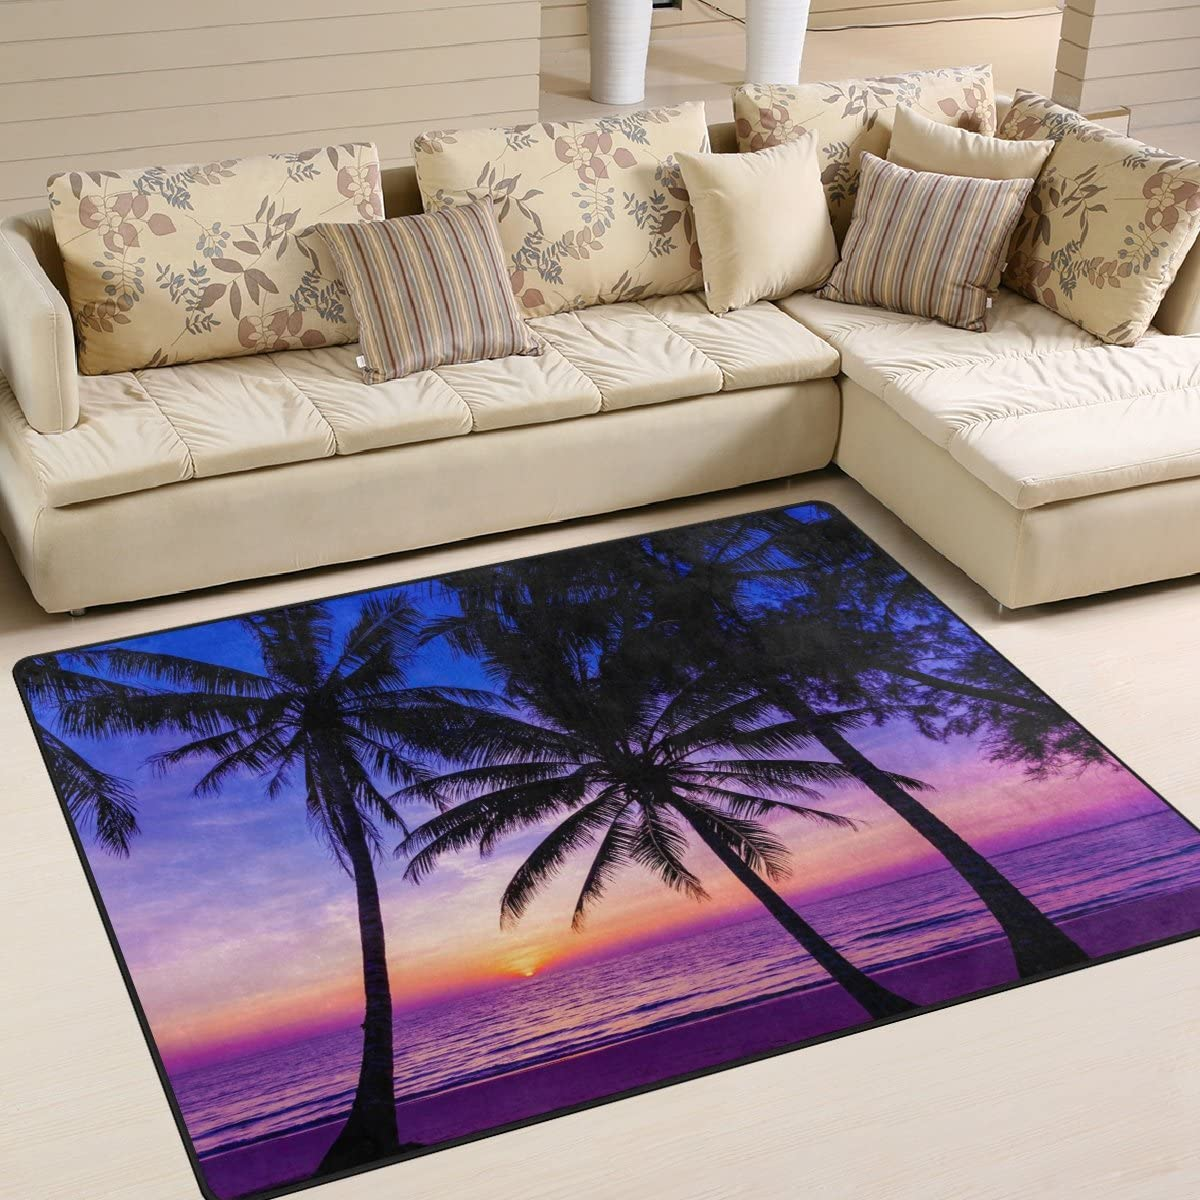 Naanle Ocean Sea Area Rug 5'x7' Trees Beach Free shipping Ranking TOP9 on posting reviews Palm Polyest Sunset